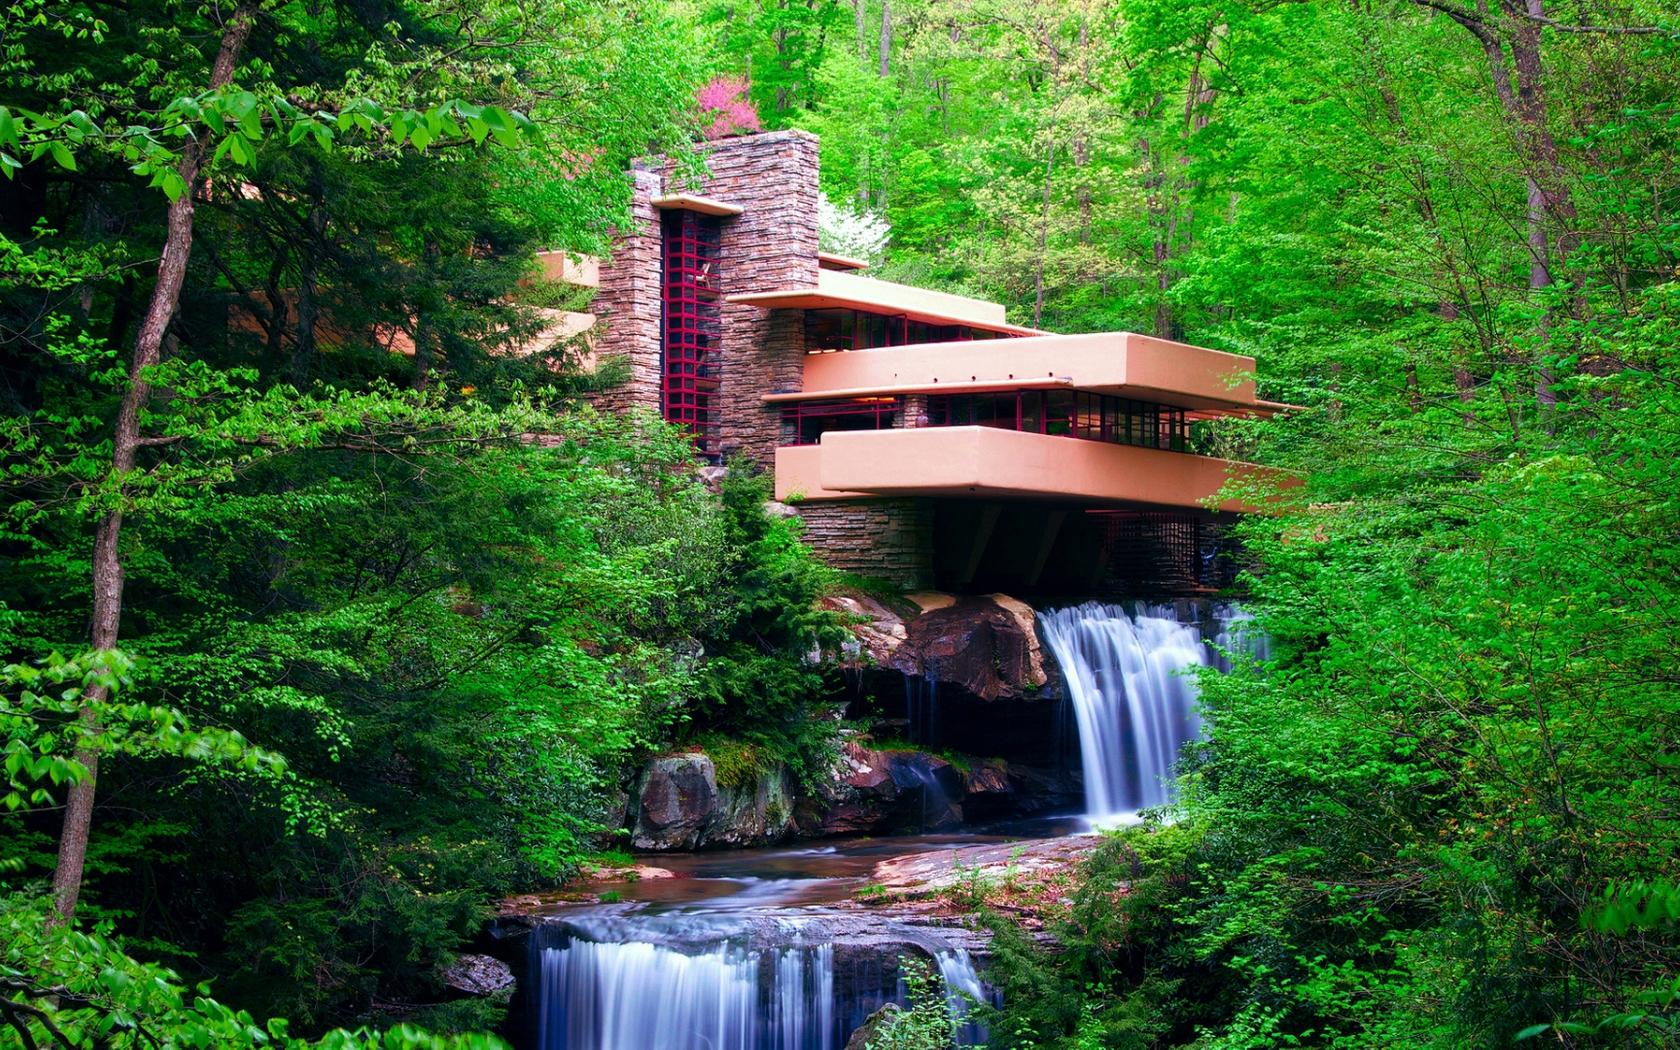 Building and waterfall in the green forest wallpaper for Waterfall green design centre